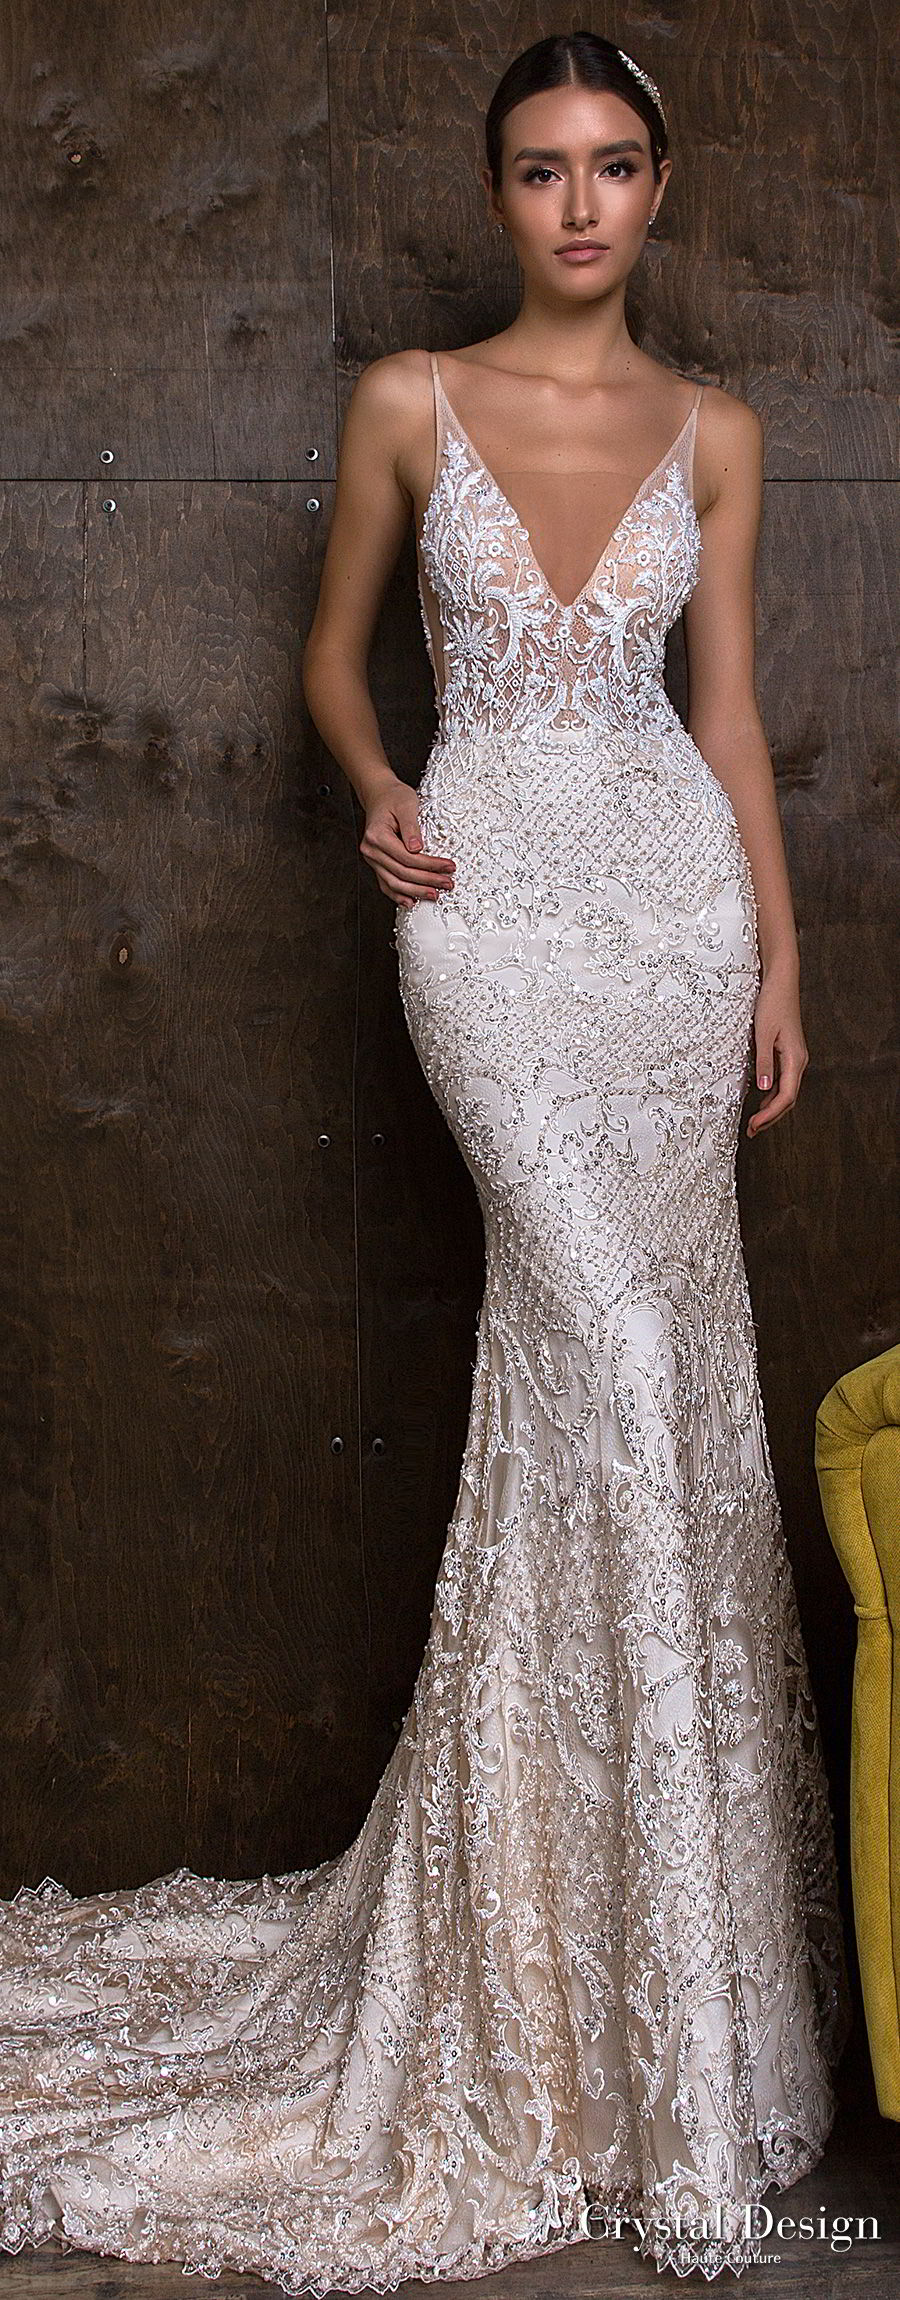 crystal design 2018 sleeveless deep v neck full embellishment elegant sheath fit and flare wedding dress open v back medium train (esben) mv